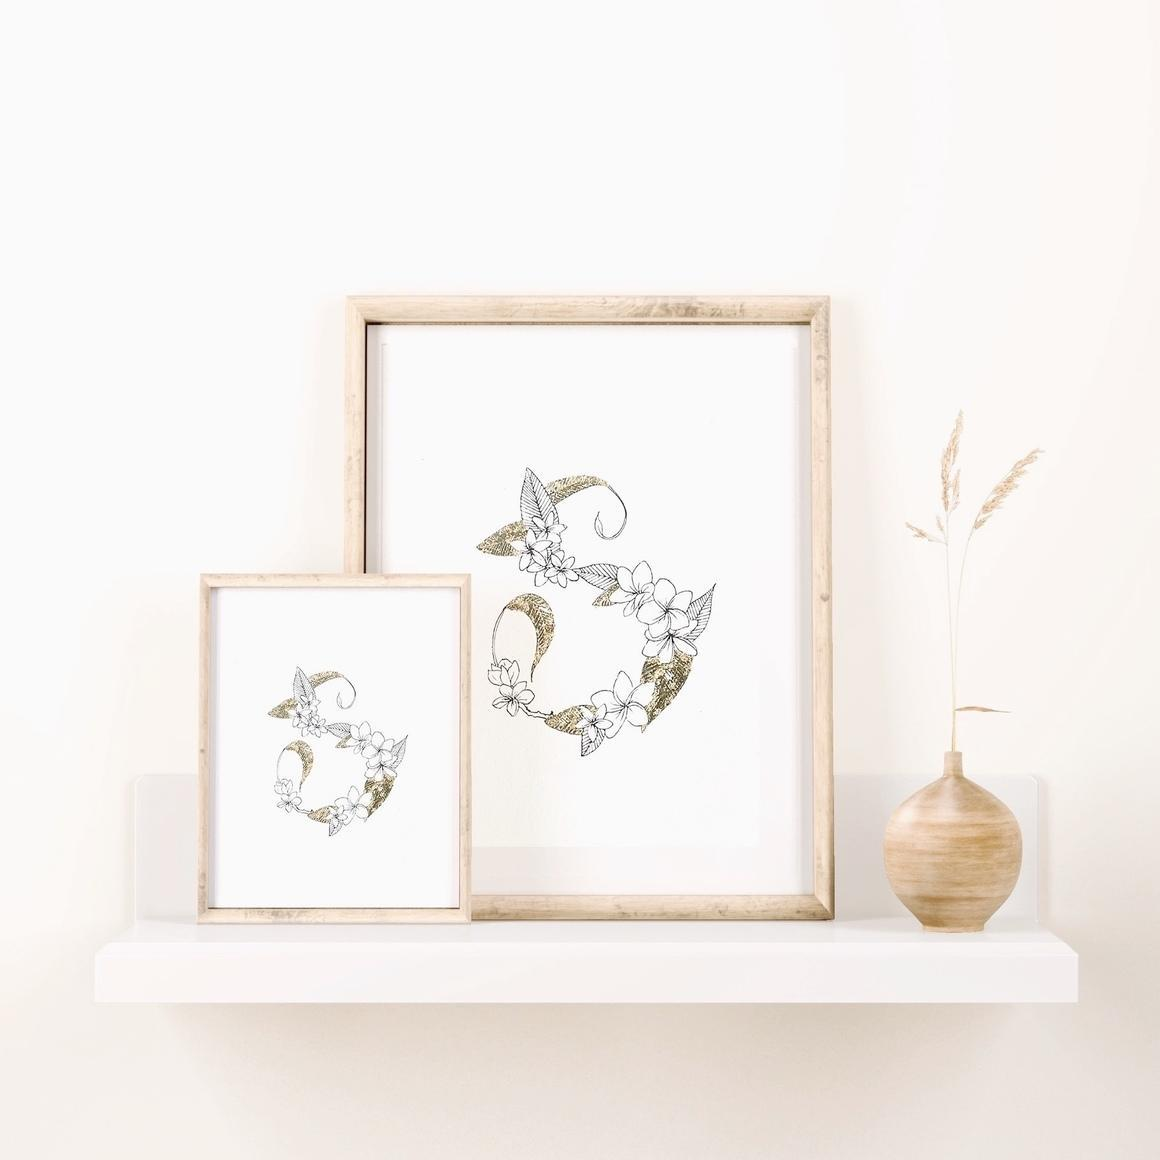 Lettering S With Full Plumeria - B & W Art Print With Gold Flake   Trada Marketplace